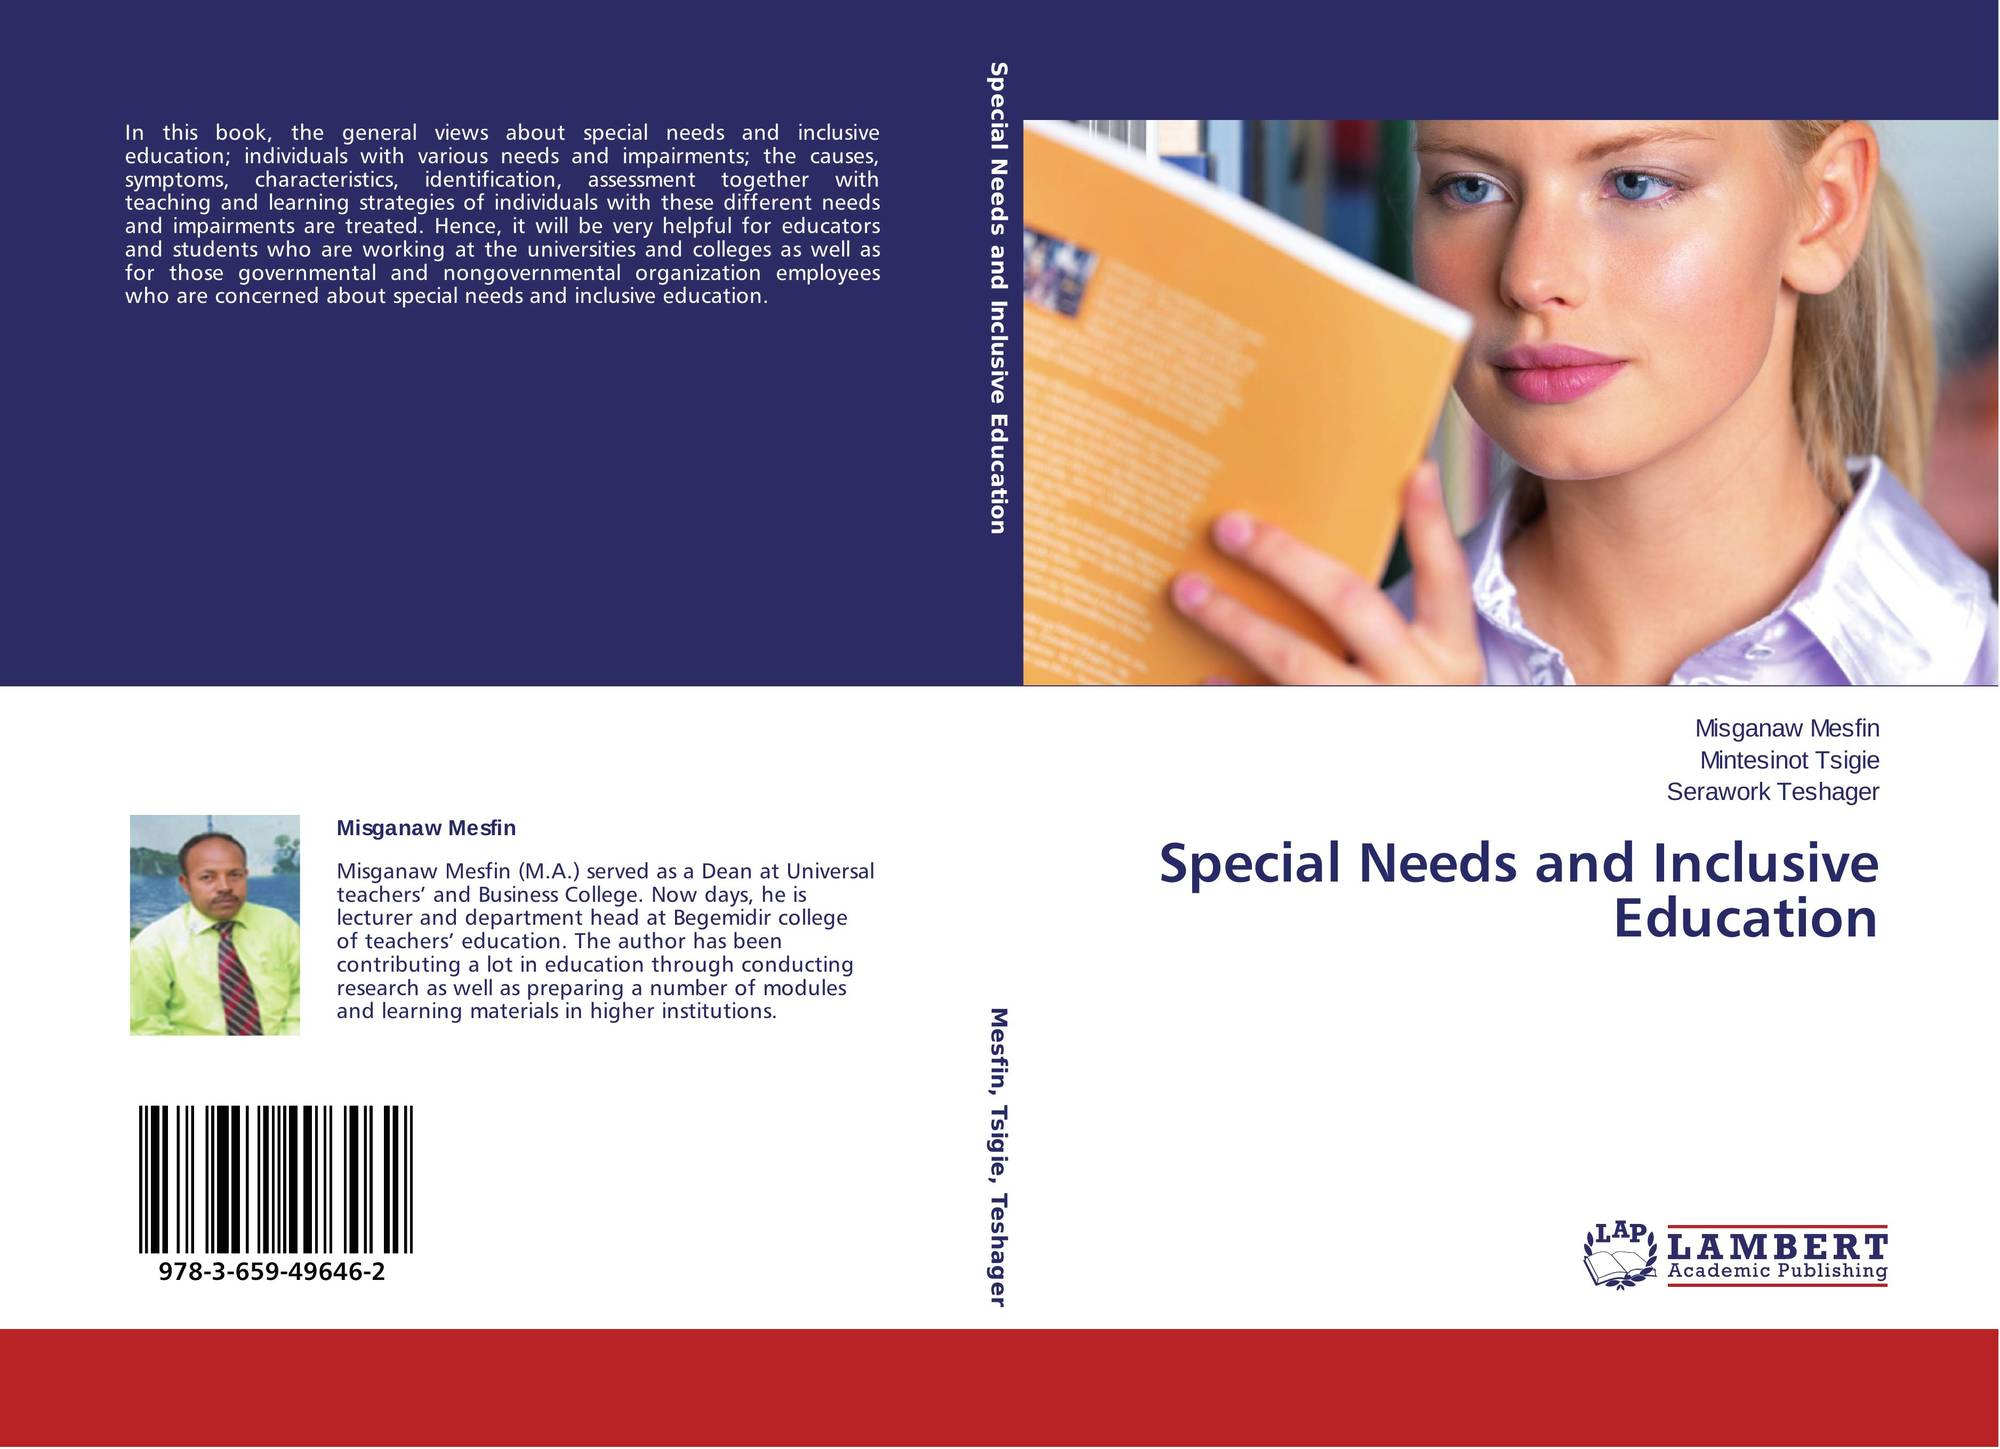 challenges of special needs education Meeting the needs of students with disabilities, those learning english, those from disadvantaged backgrounds, and gifted students is a challenge that goes to the core of education's purpose, however.